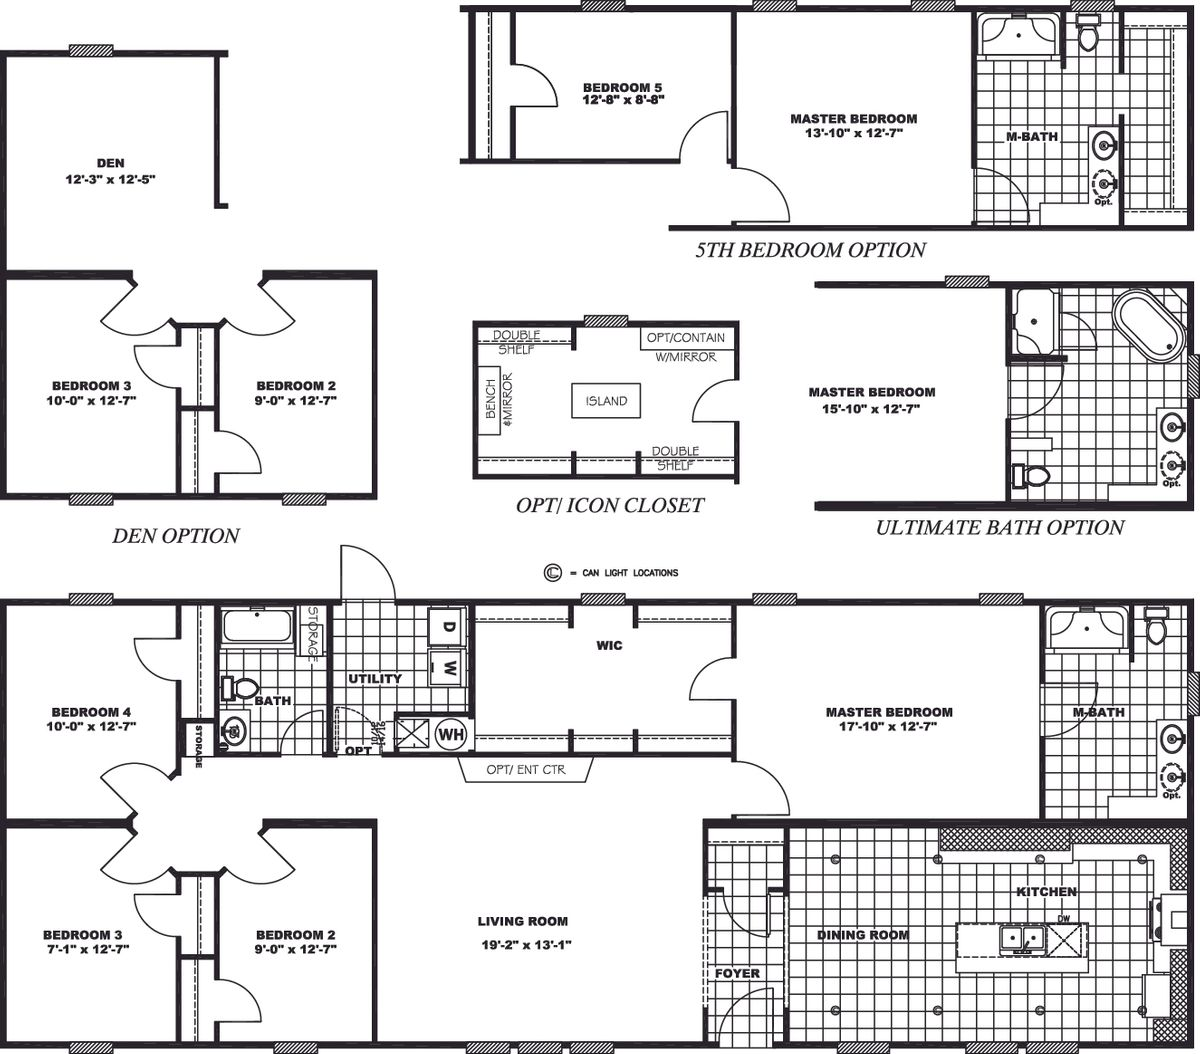 46BCN28704AH Floor Plan